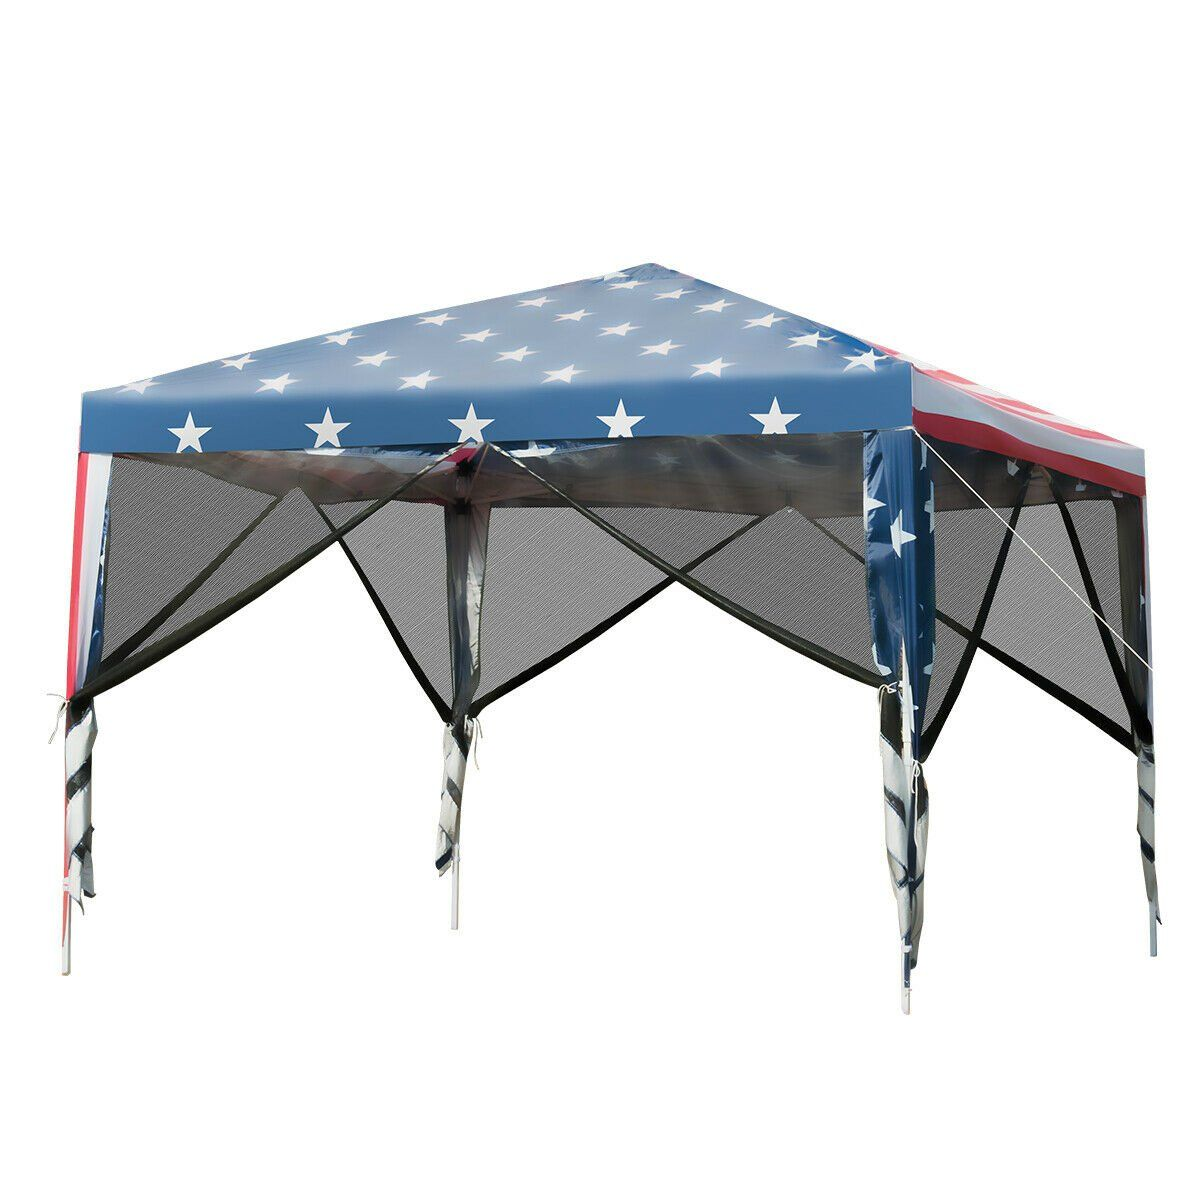 Outdoor 10 X 10 Pop Up Canopy Tent Gazebo Canopy In 2020 Pop Up Canopy Tent Gazebo Canopy Canopy Tent